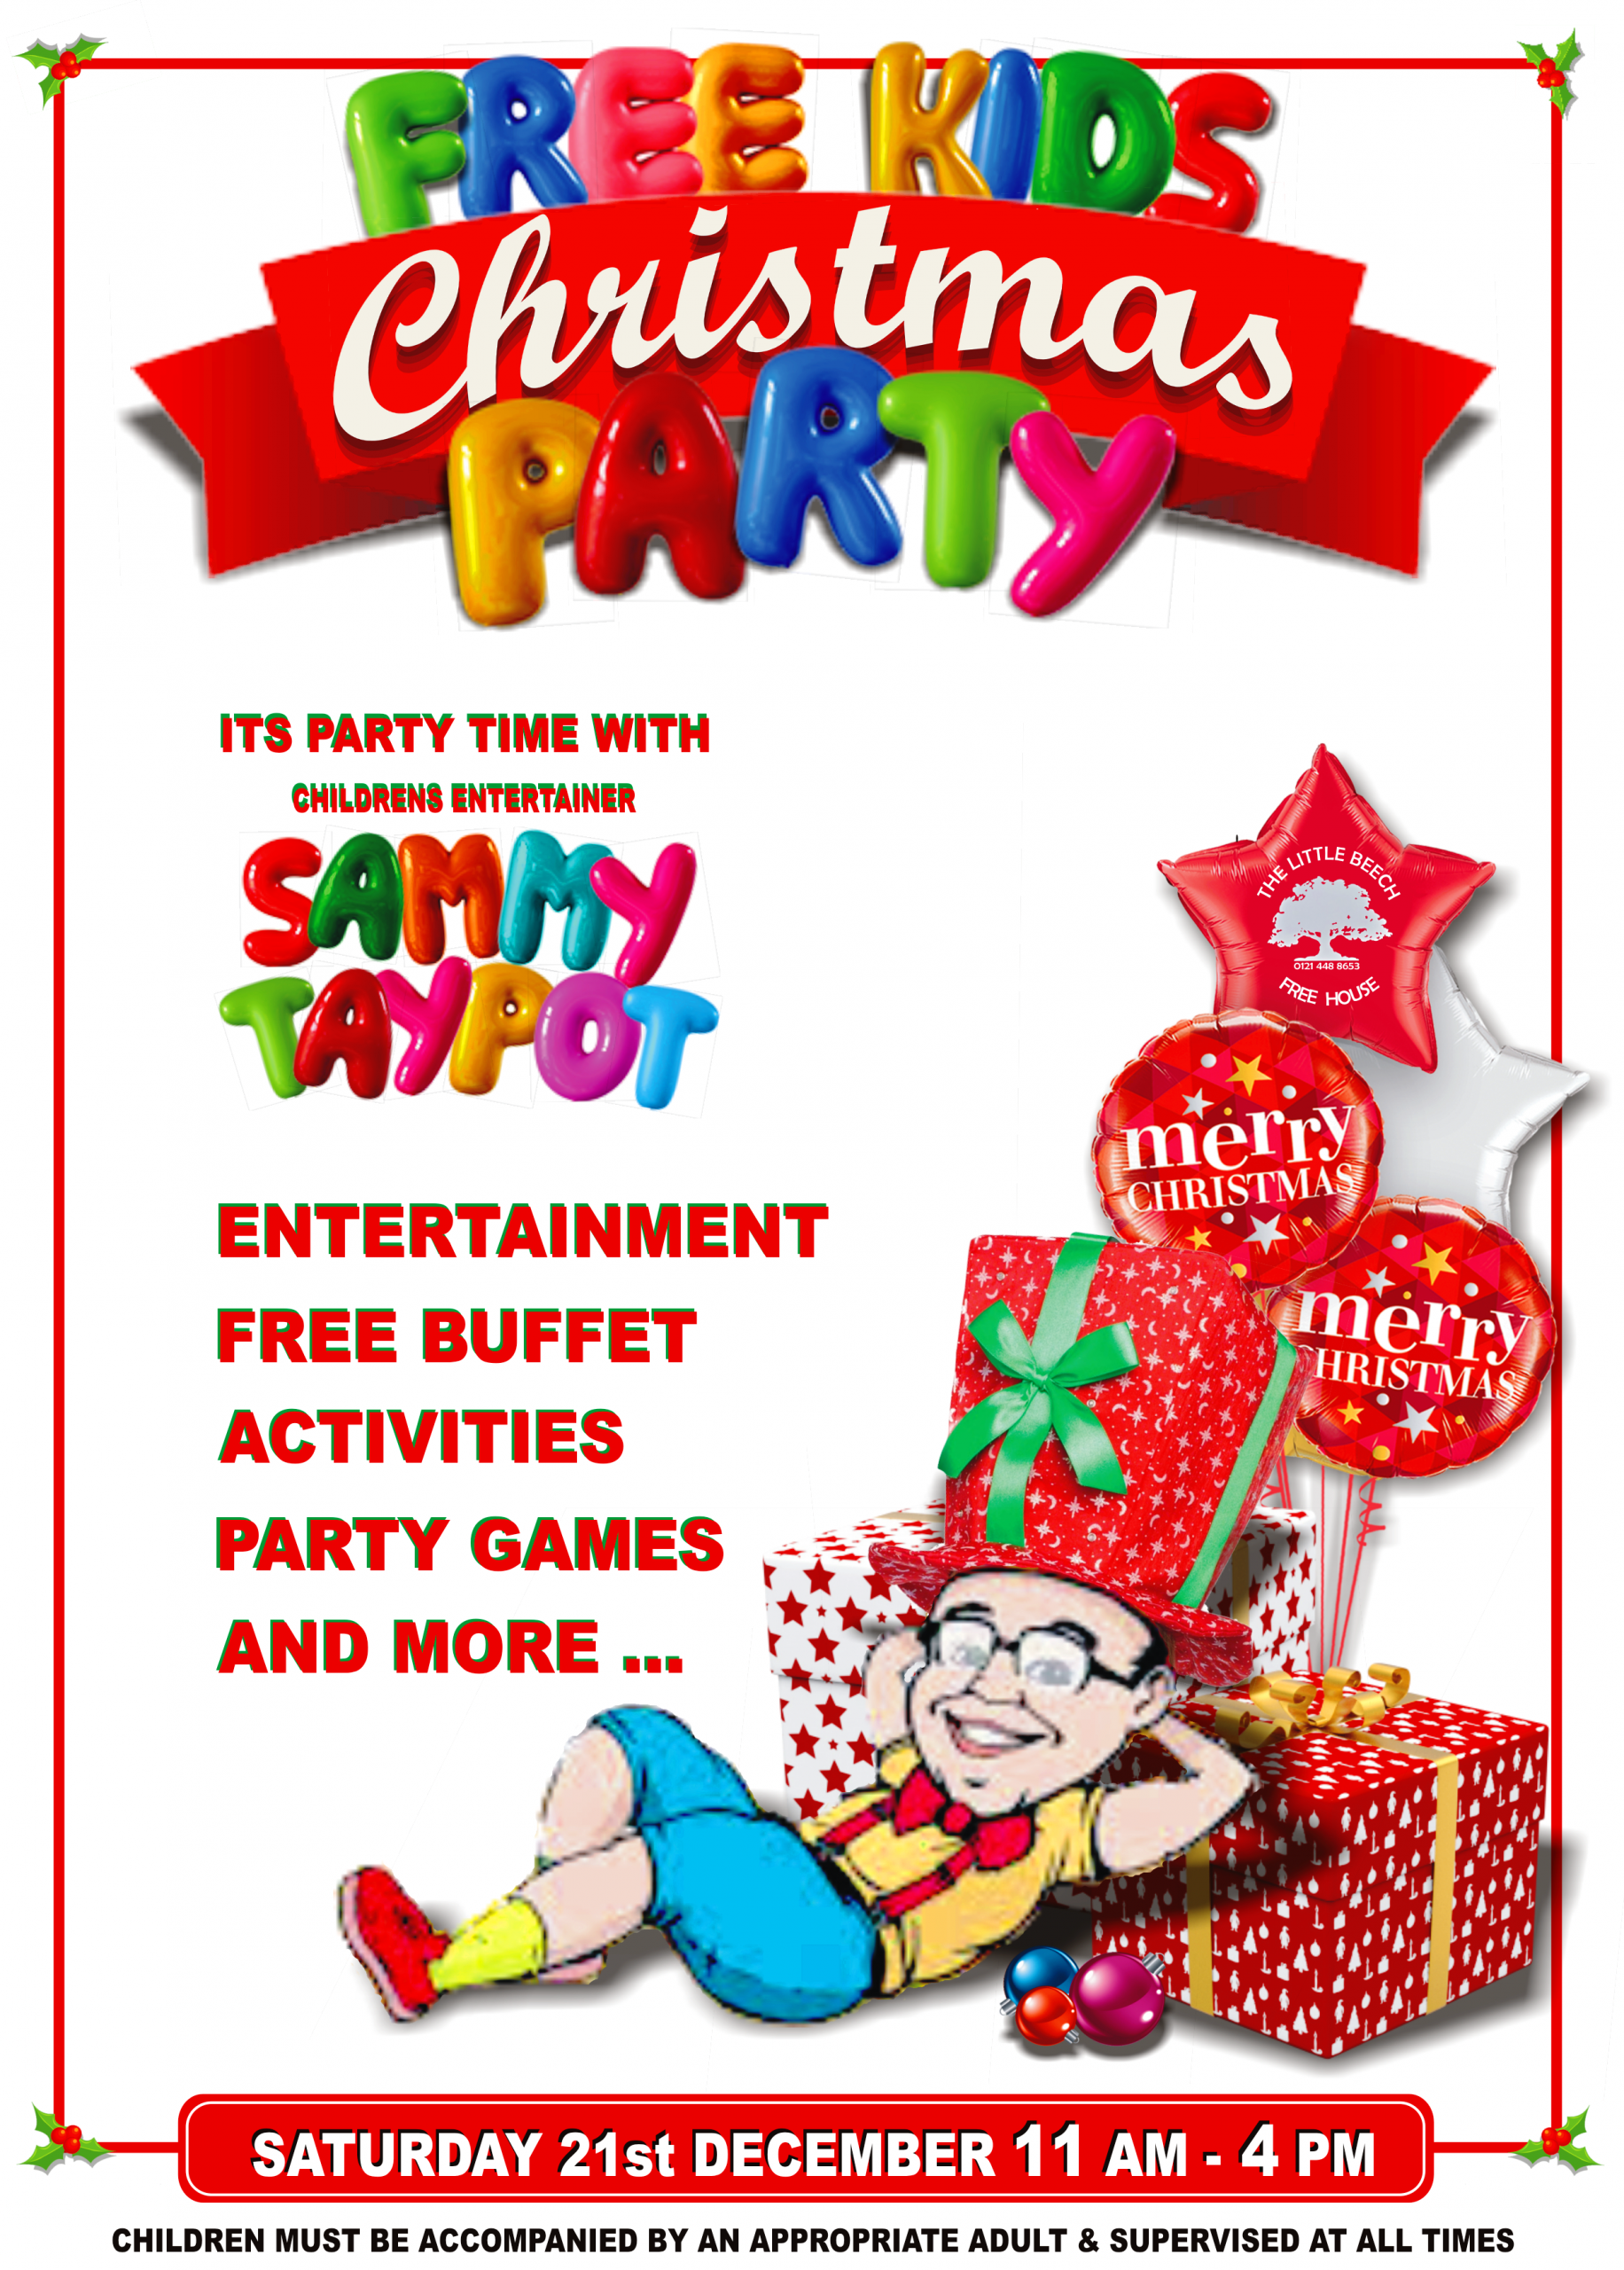 The-Little-Beech-Pub-Free-Childrens-Party-2019